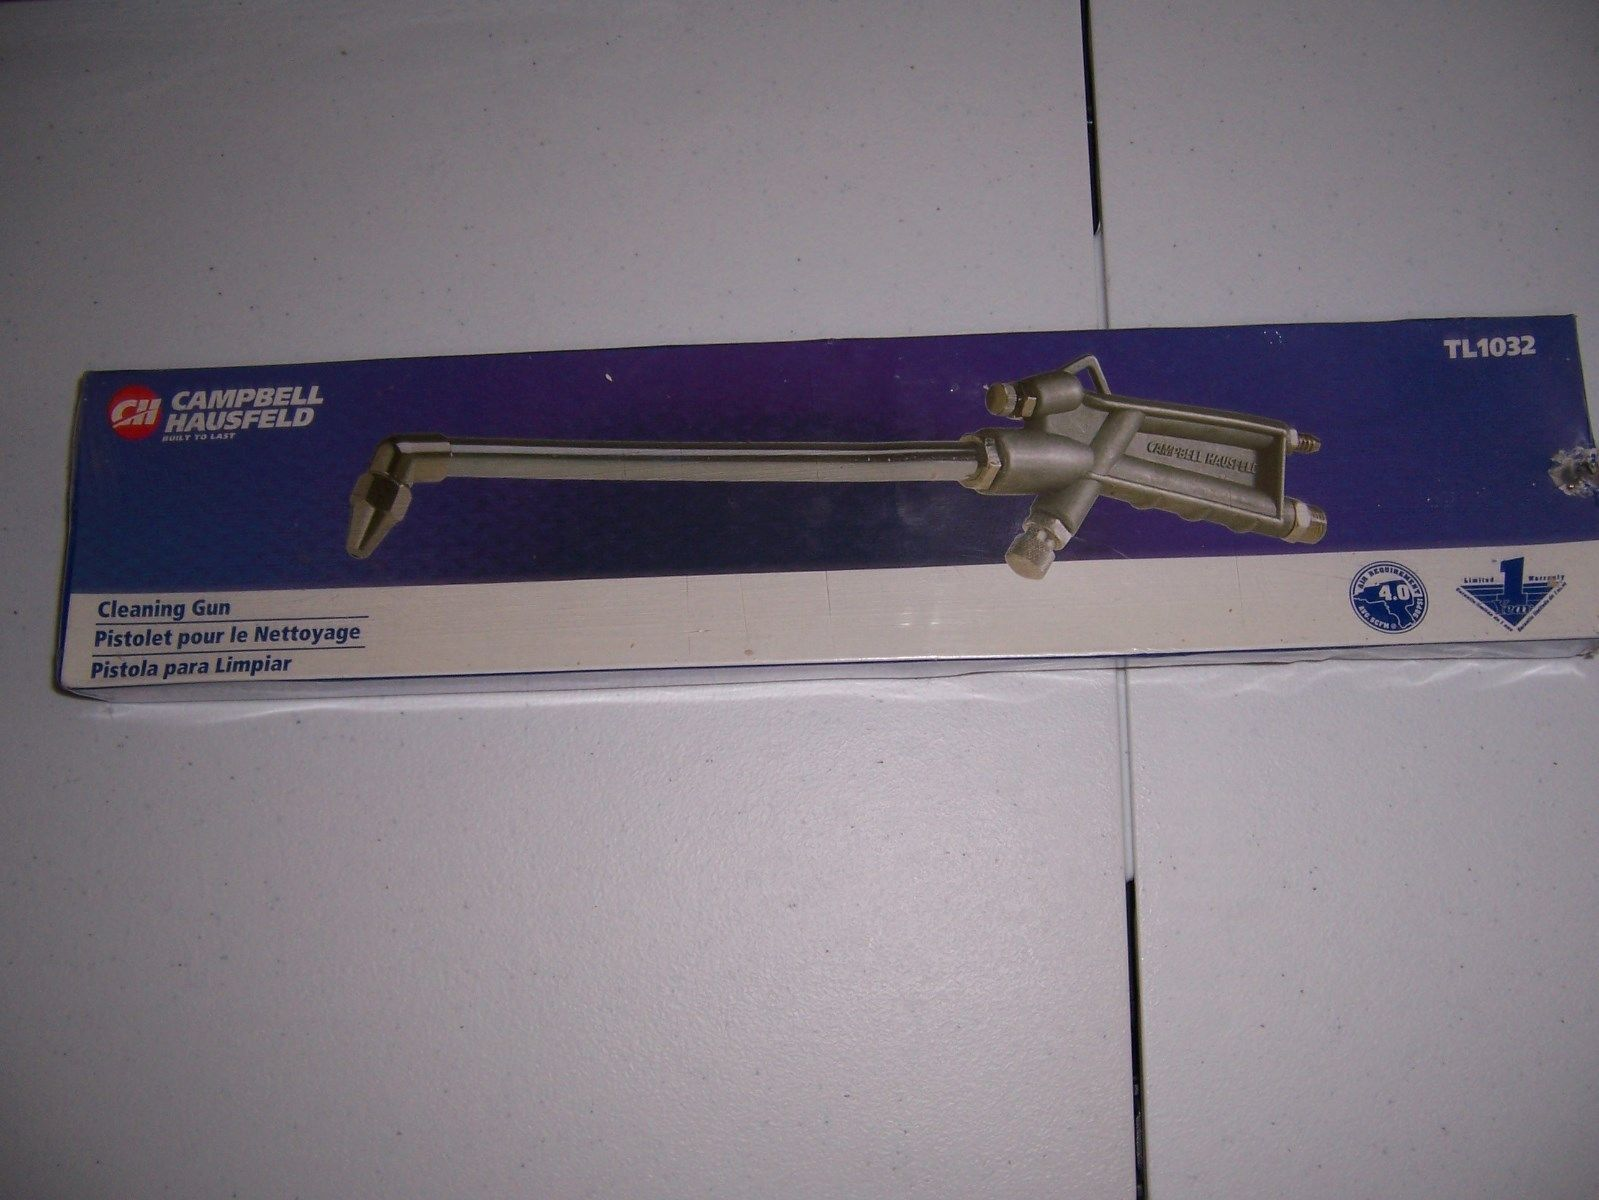 NEW IN PACKAGE CAMPBELL HAUSFELD TL1032 CLEANING GUN - $11.99